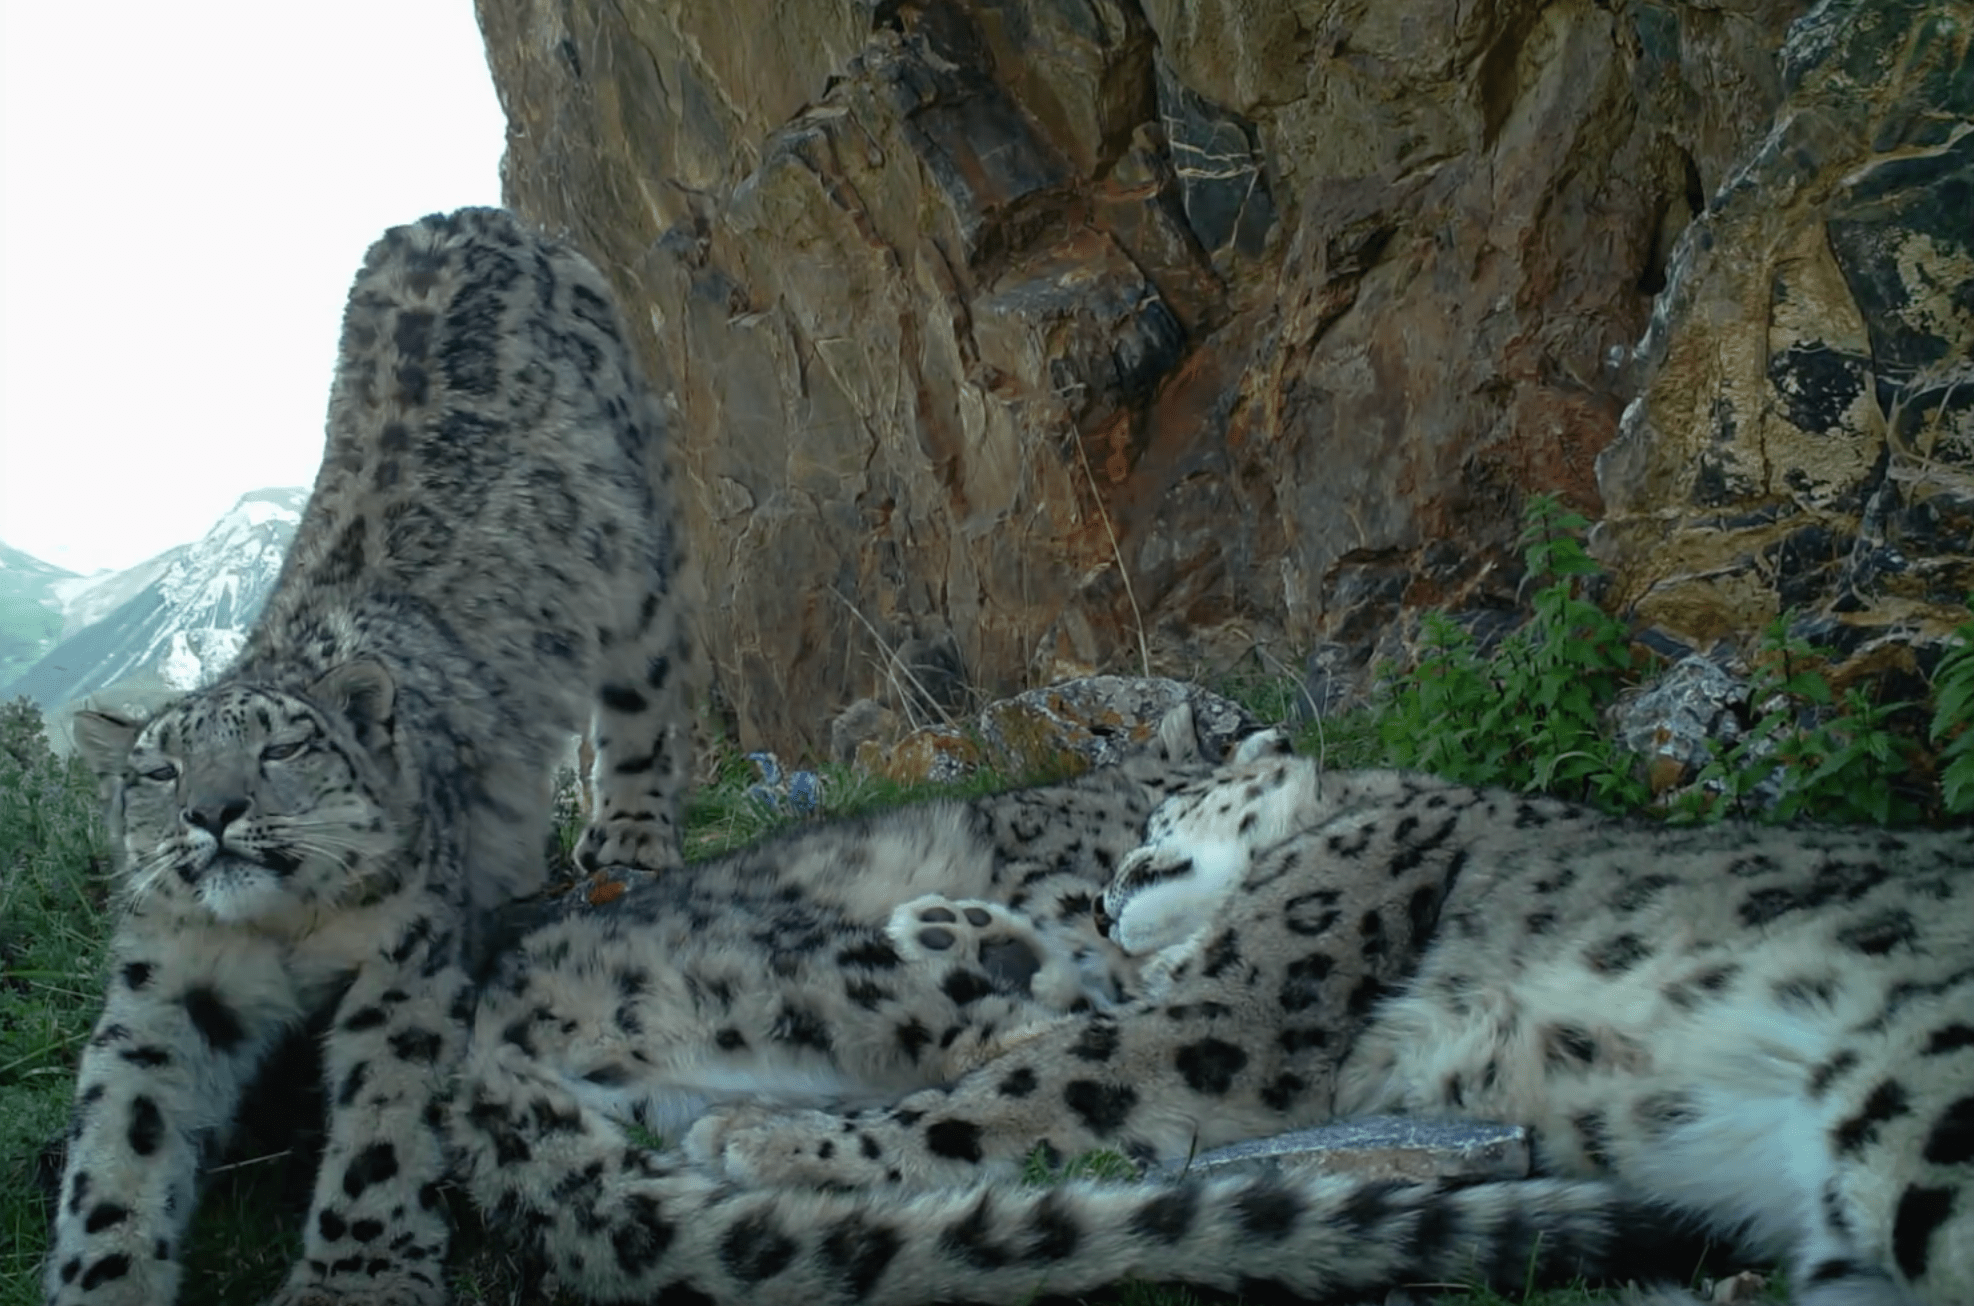 The footage shows the snow leopards curled up together ©Panthera, Snow Leopard Trust and Shan Shui.